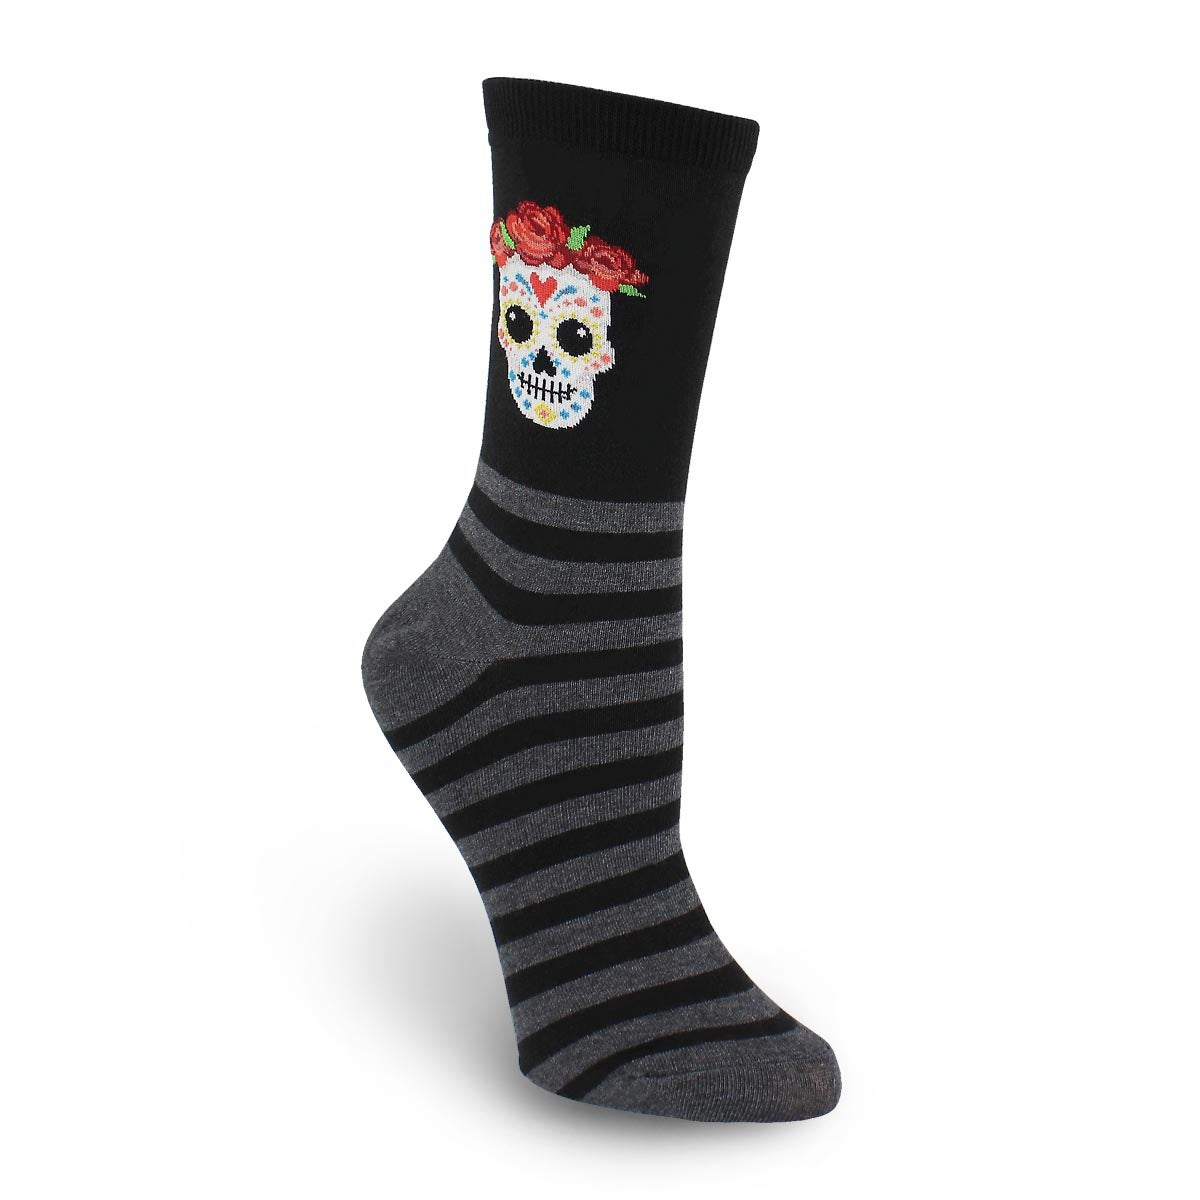 Lds Sugar Skull black printed sock